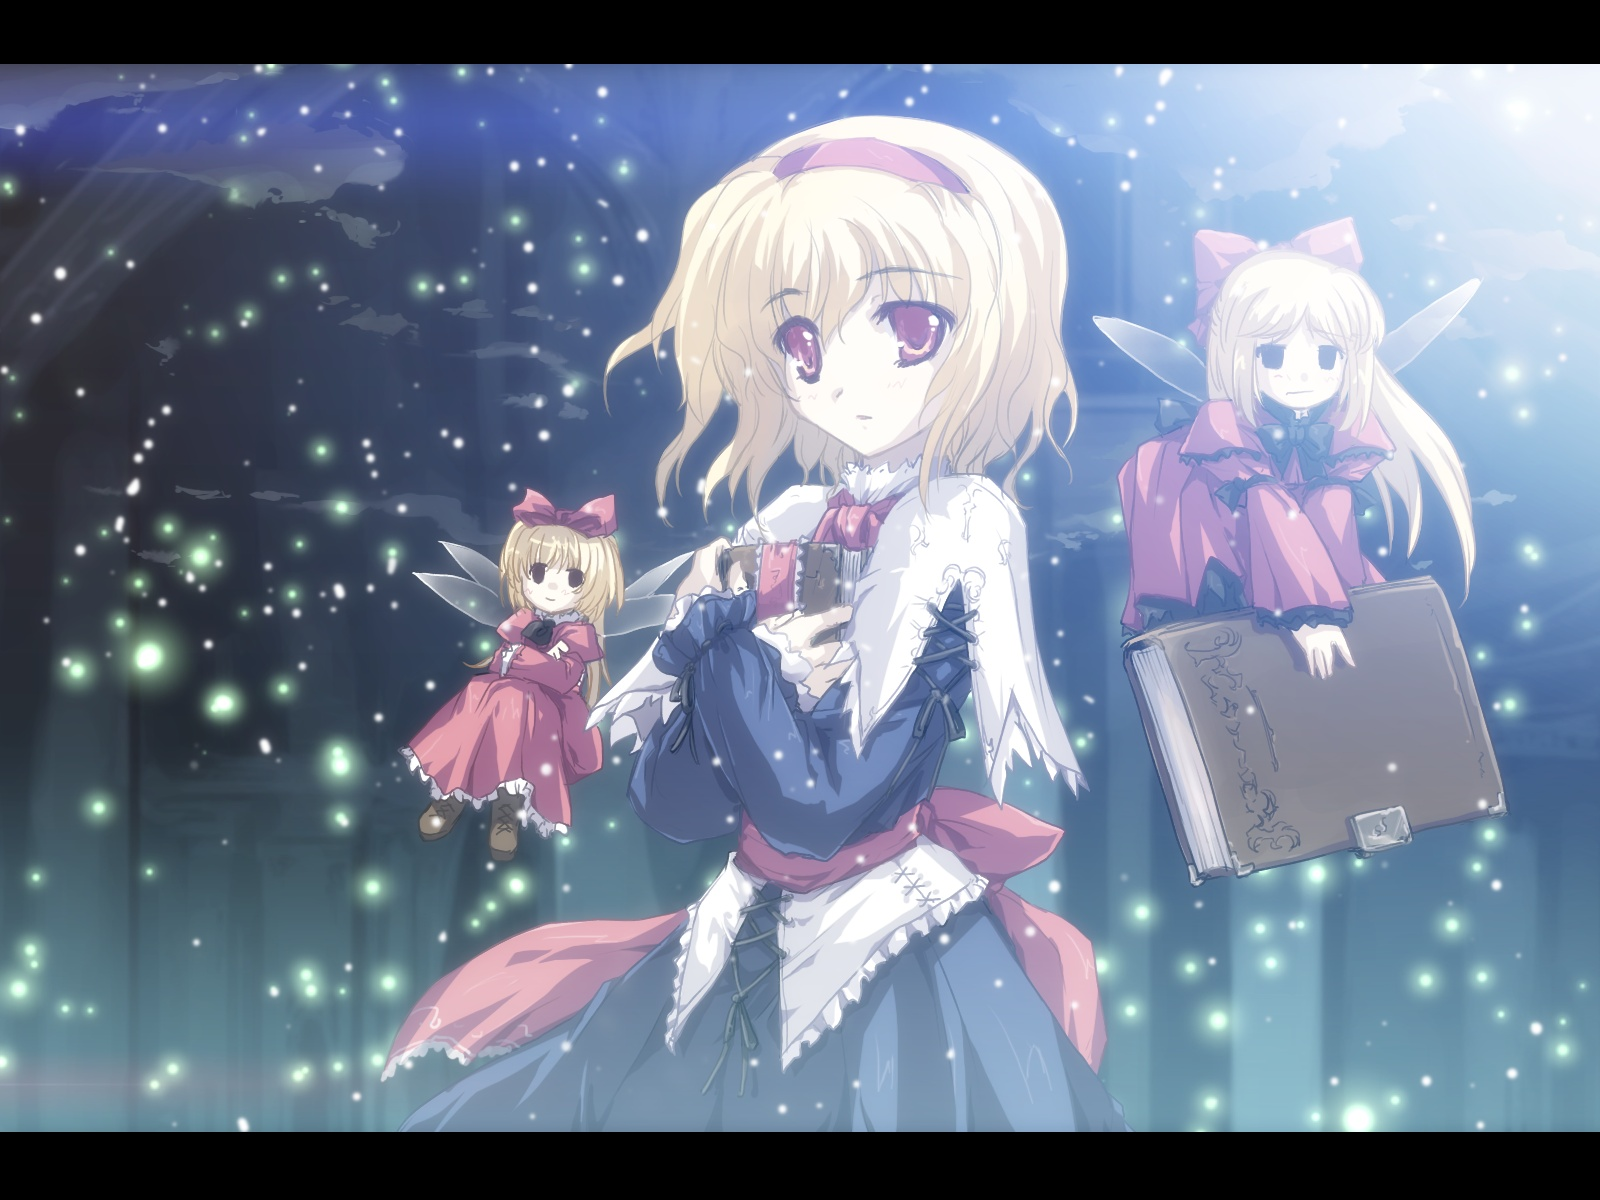 alice_margatroid blonde_hair book boots doll dress hourai long_hair red_eyes ribbons shanghai_doll short_hair tokiame touhou wings